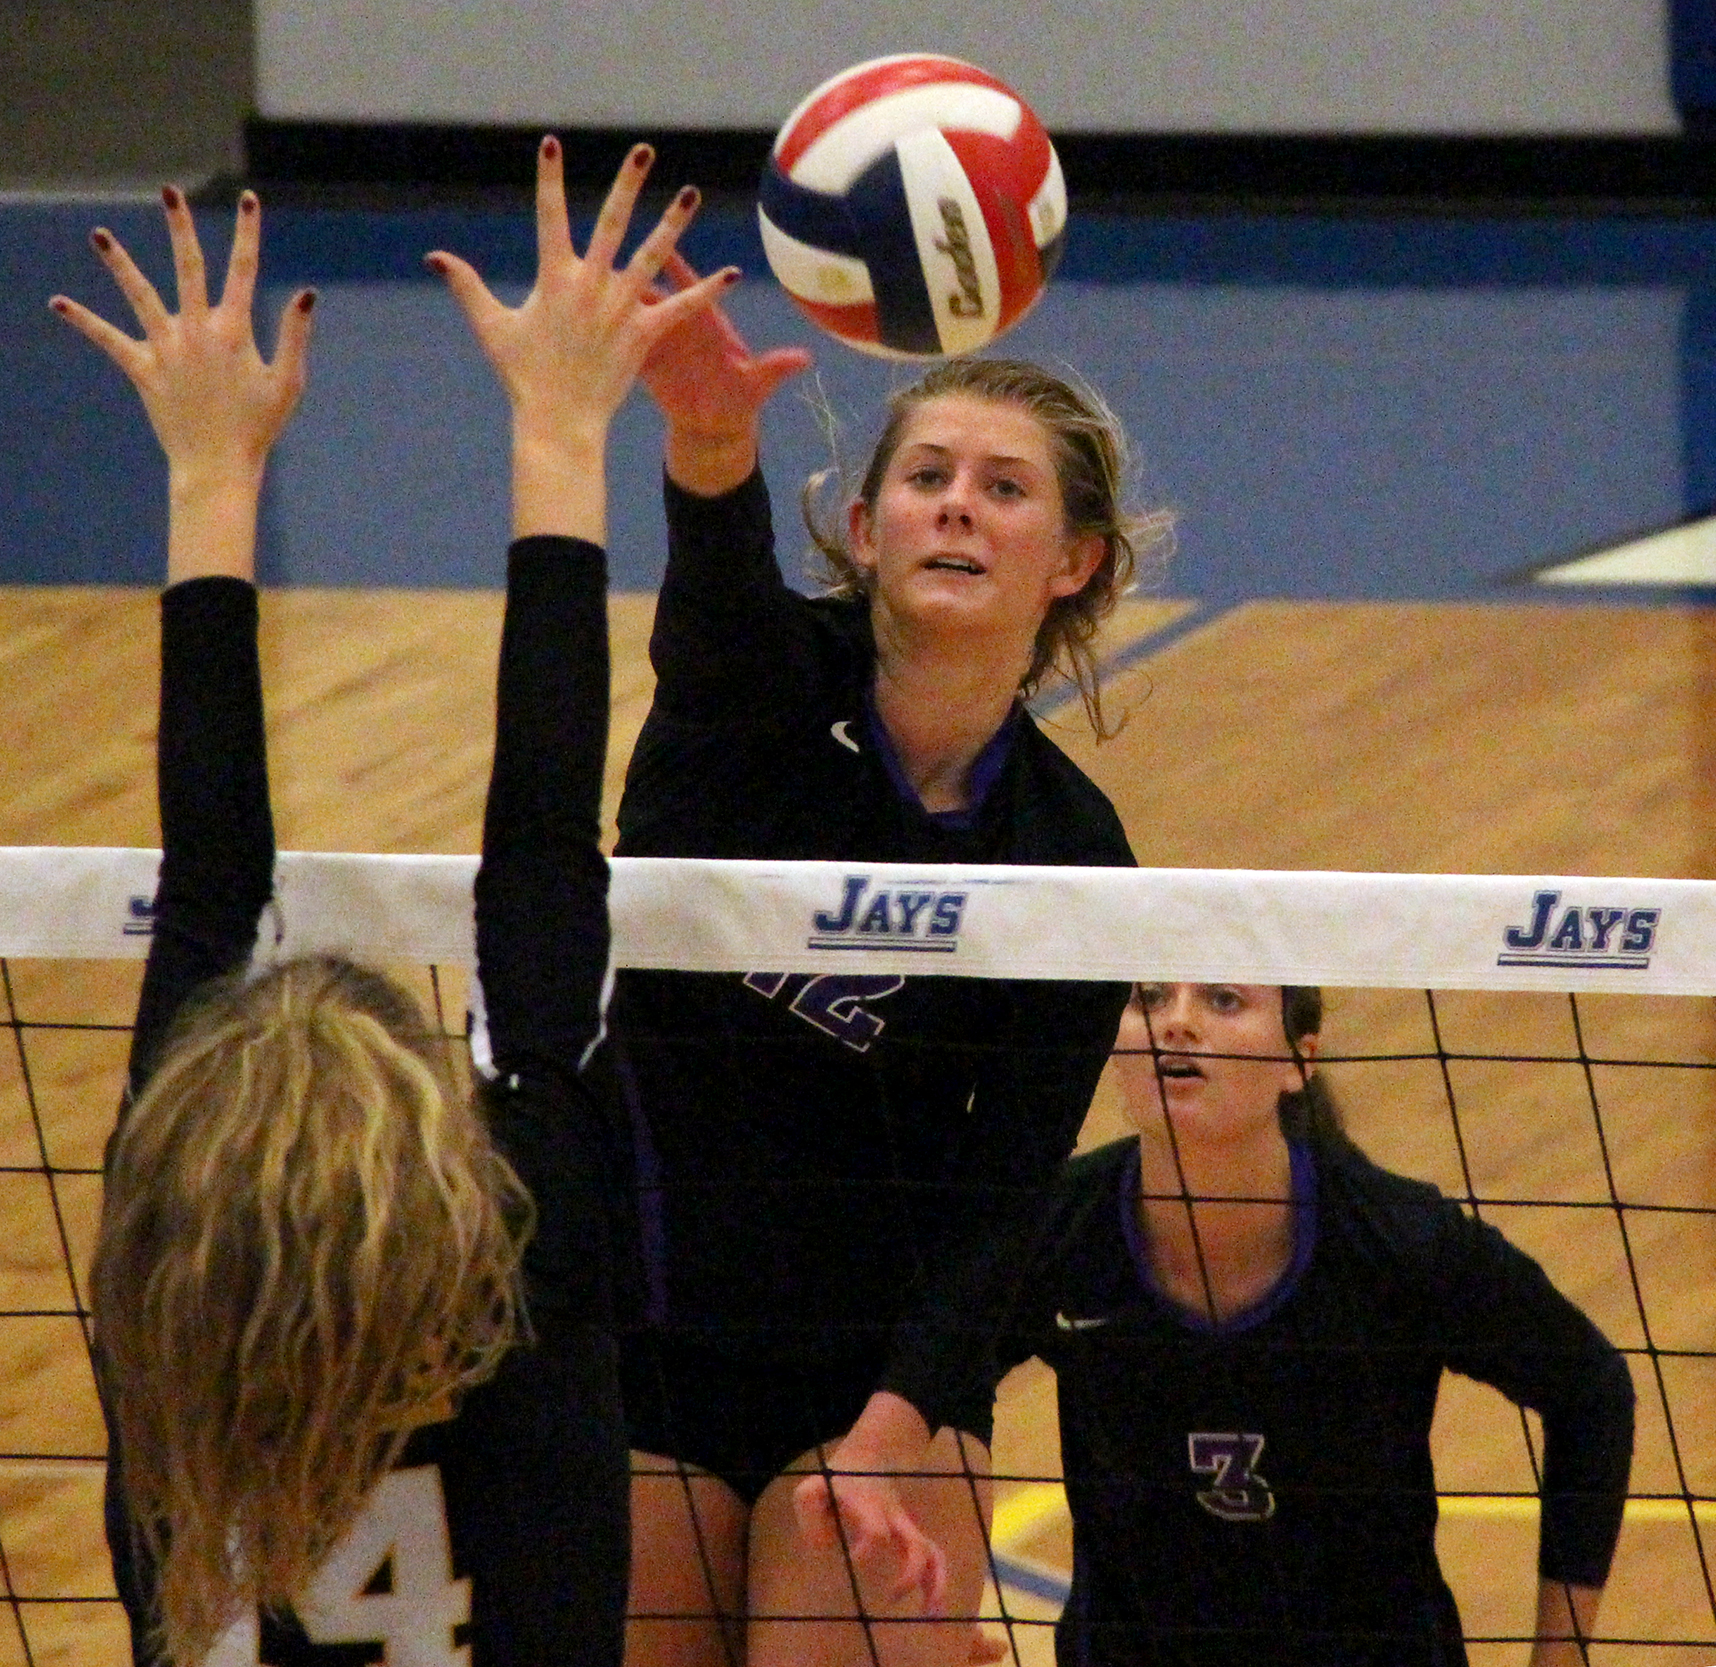 ROSS MARTIN/Citizen photo Park Hill South senior Andi Elley (12) hits a spike over the net against St. Teresa's Academy in a Class 4 quarterfinal played Saturday, Oct. 22 at Liberty Fieldhouse in Liberty, Mo.